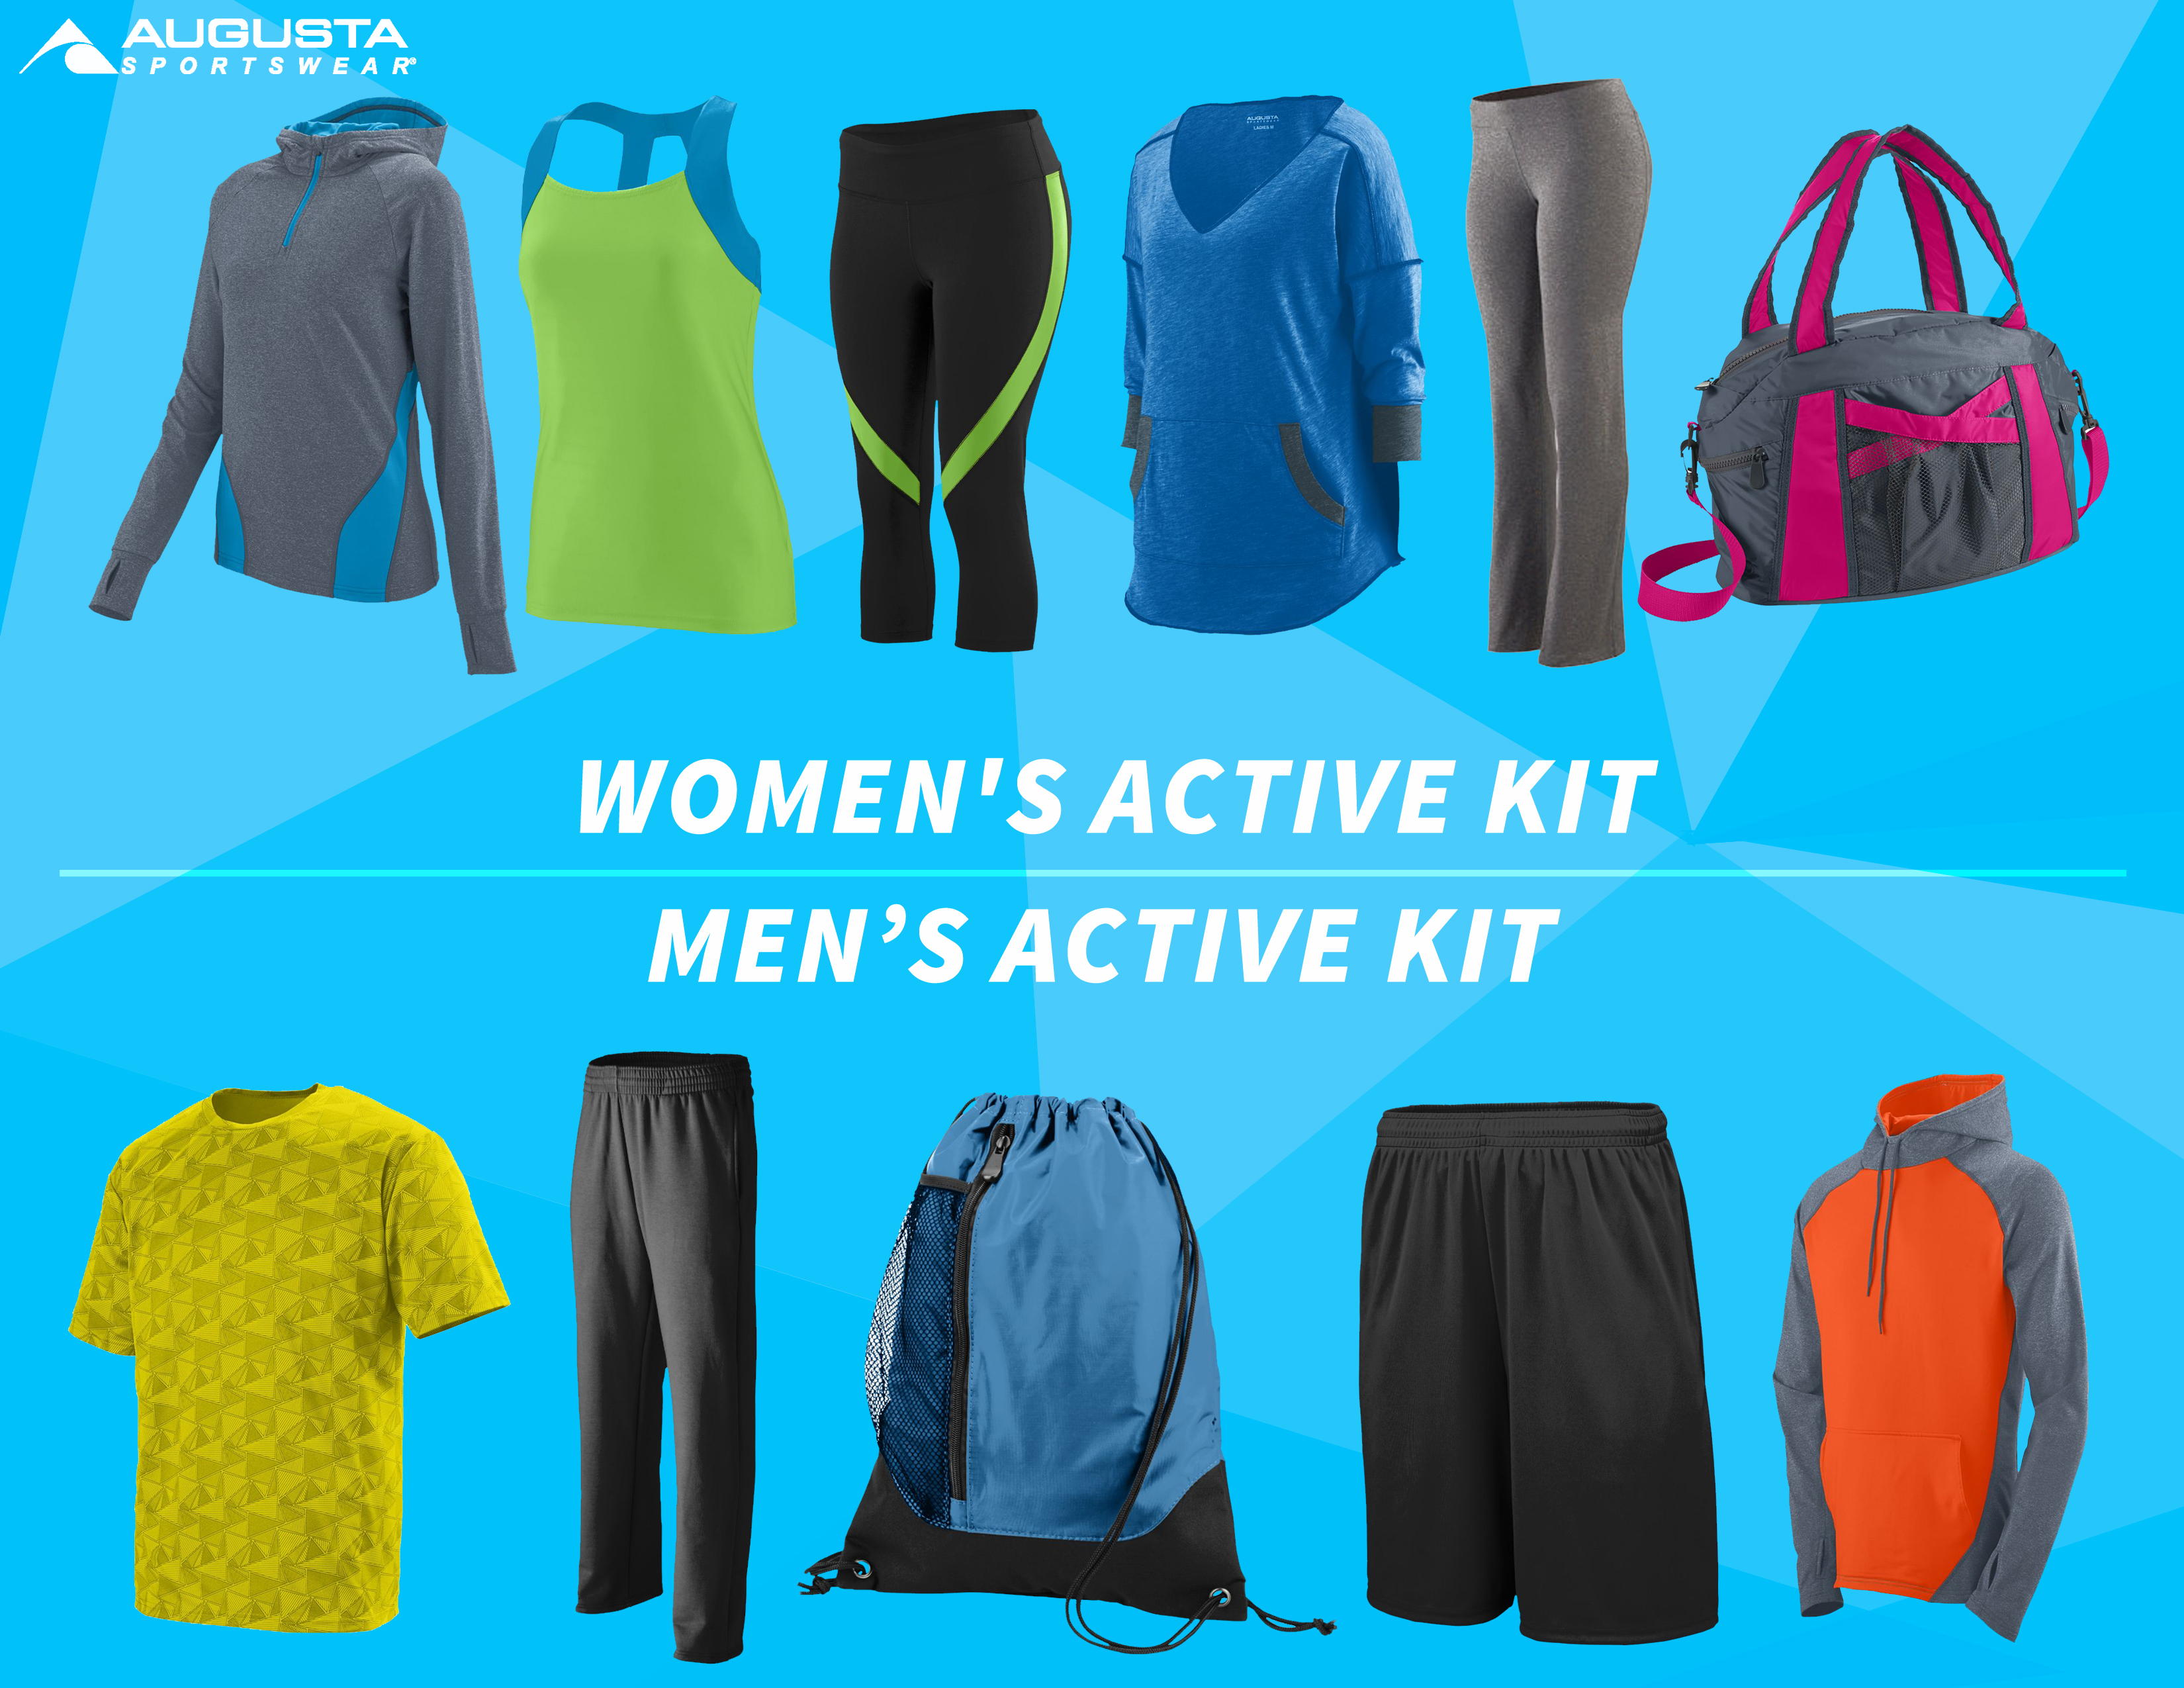 80845fc91e0 Augusta Sportswear Review + Large Active Kit Giveaway - The Fit Foodie Mama